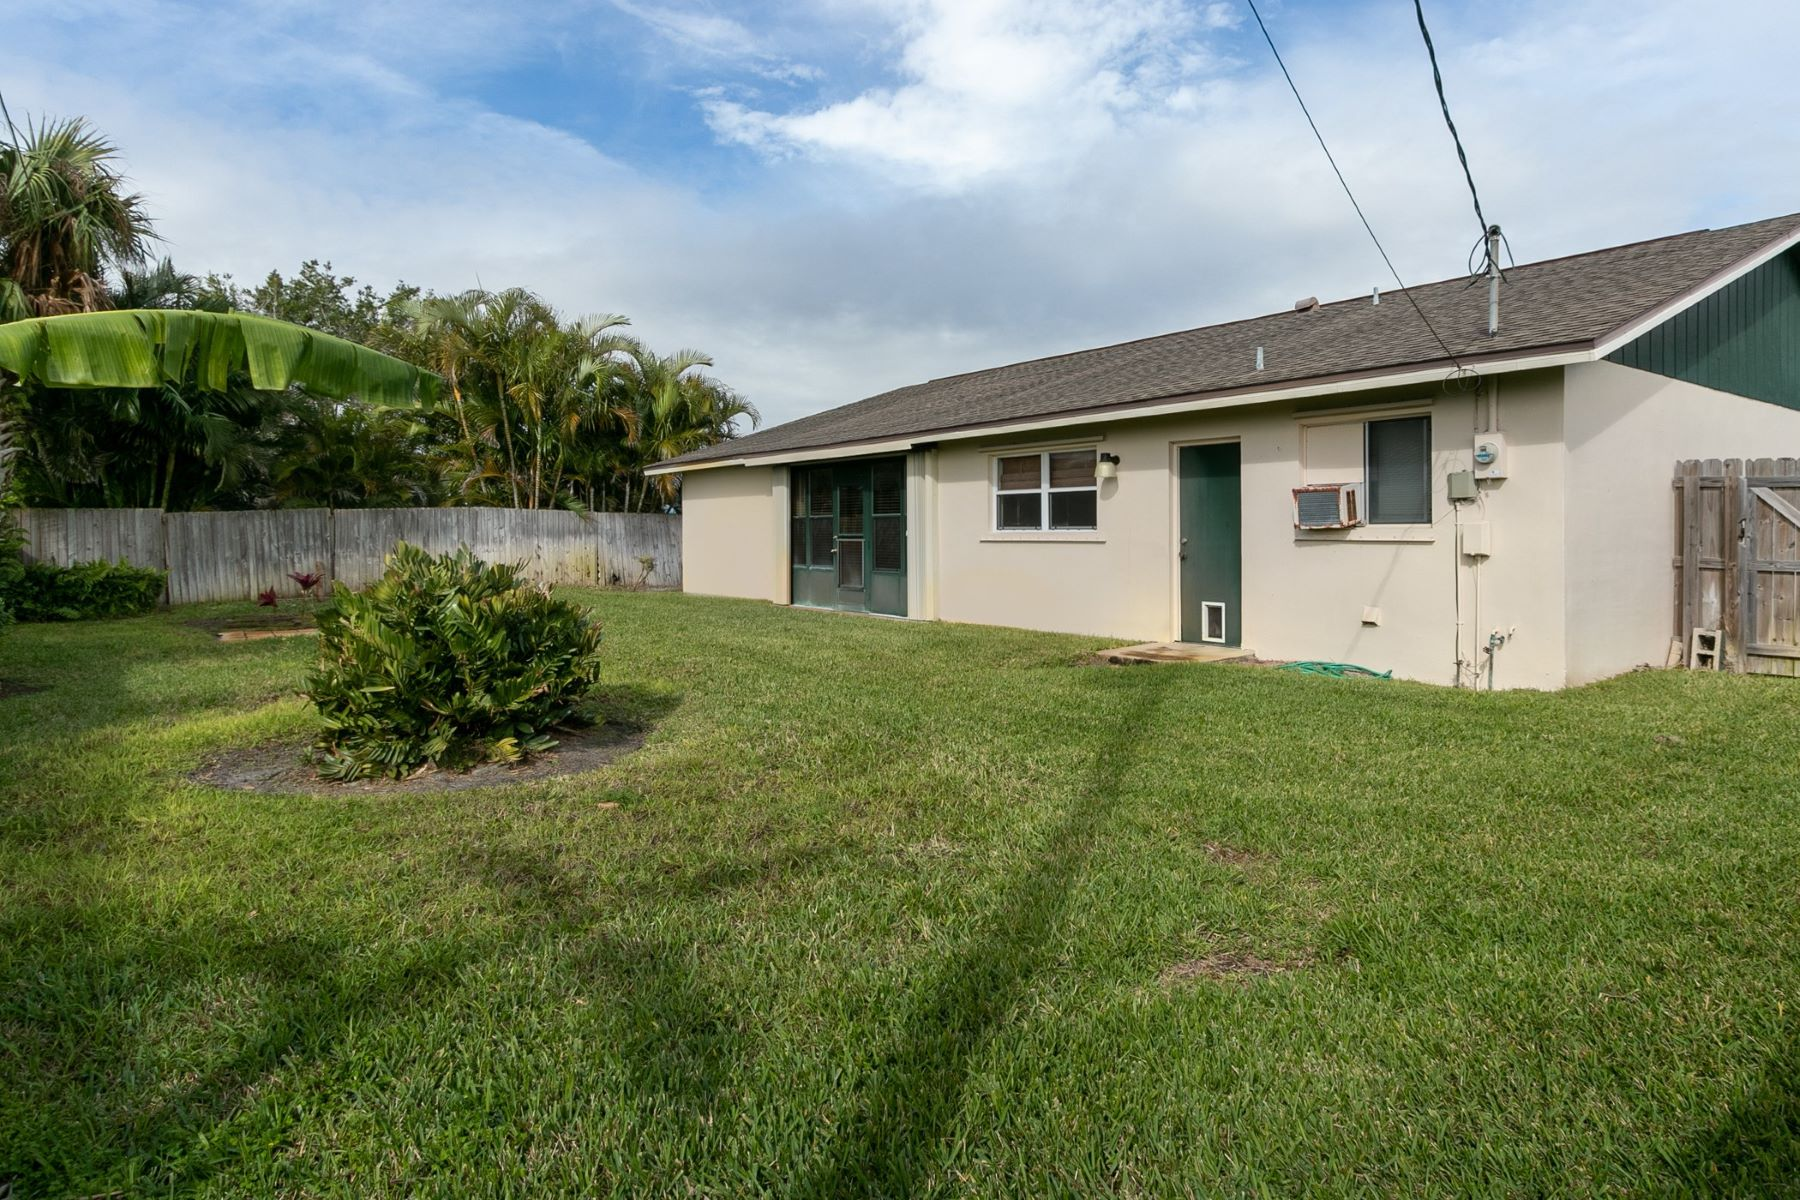 Additional photo for property listing at 3282 E Eastman Ne Avenue 3282 E Eastman Avenue Ne Palm Bay, Florida 32905 Verenigde Staten